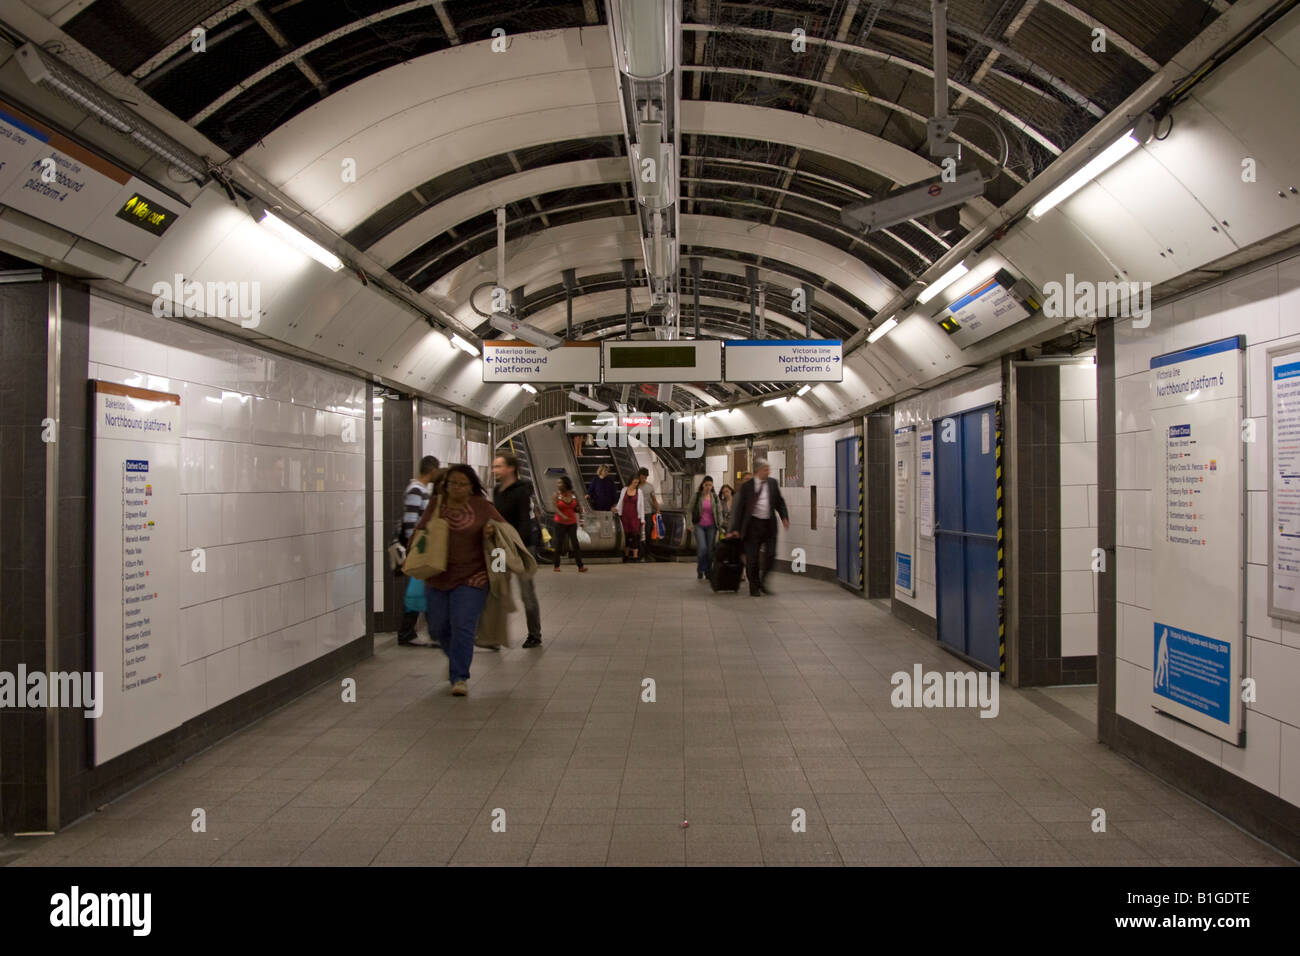 Oxford Circus Underground Station Passenger concourse for Victoria line and Bakerloo line northbound trains Stock Photo